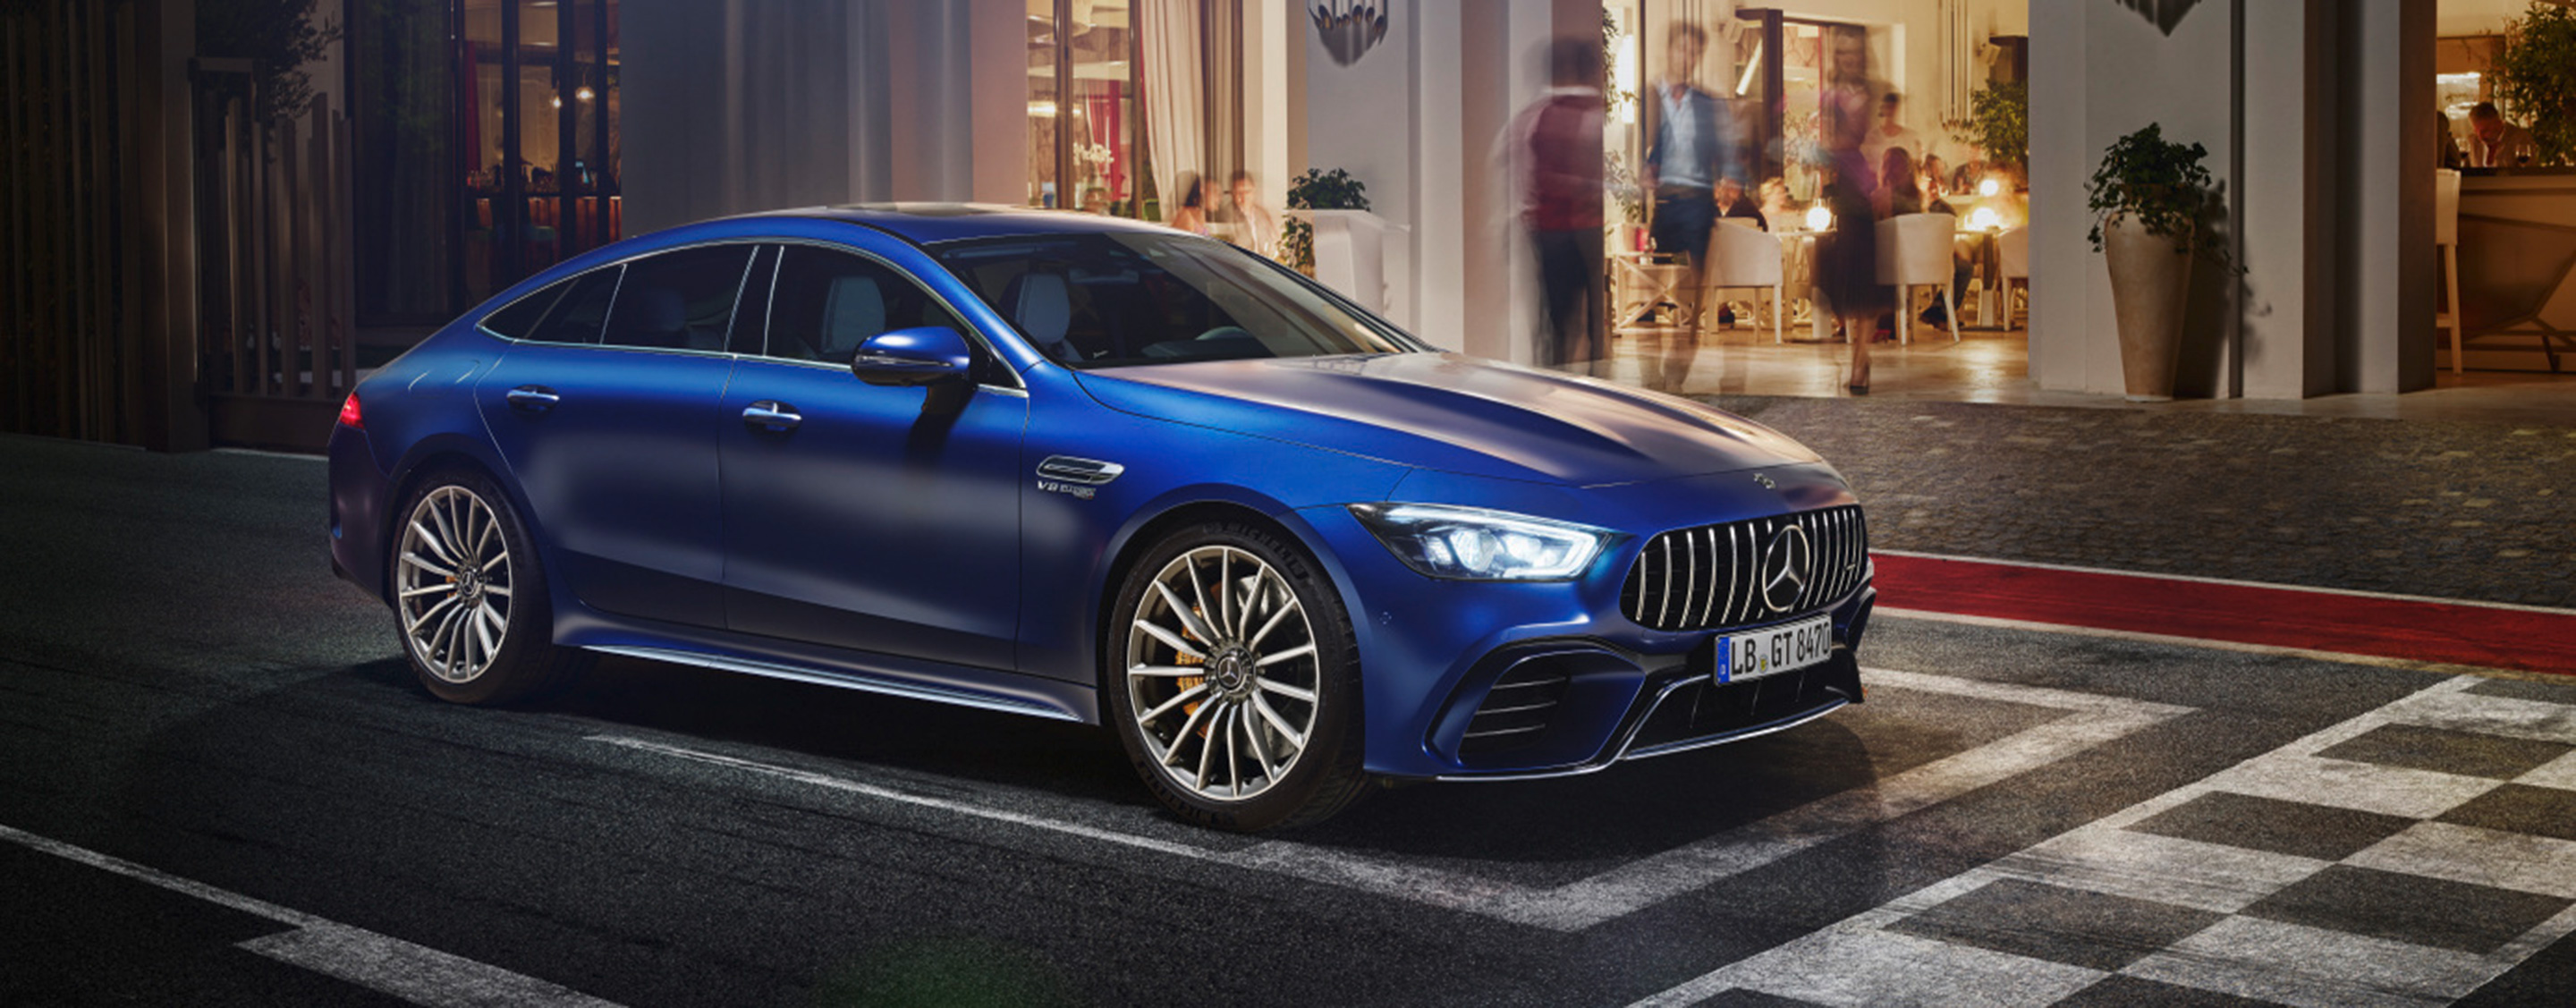 TrackWorthy - Mercedes-AMG GT 4-Door Coupe, 'Life is a Race' (4)